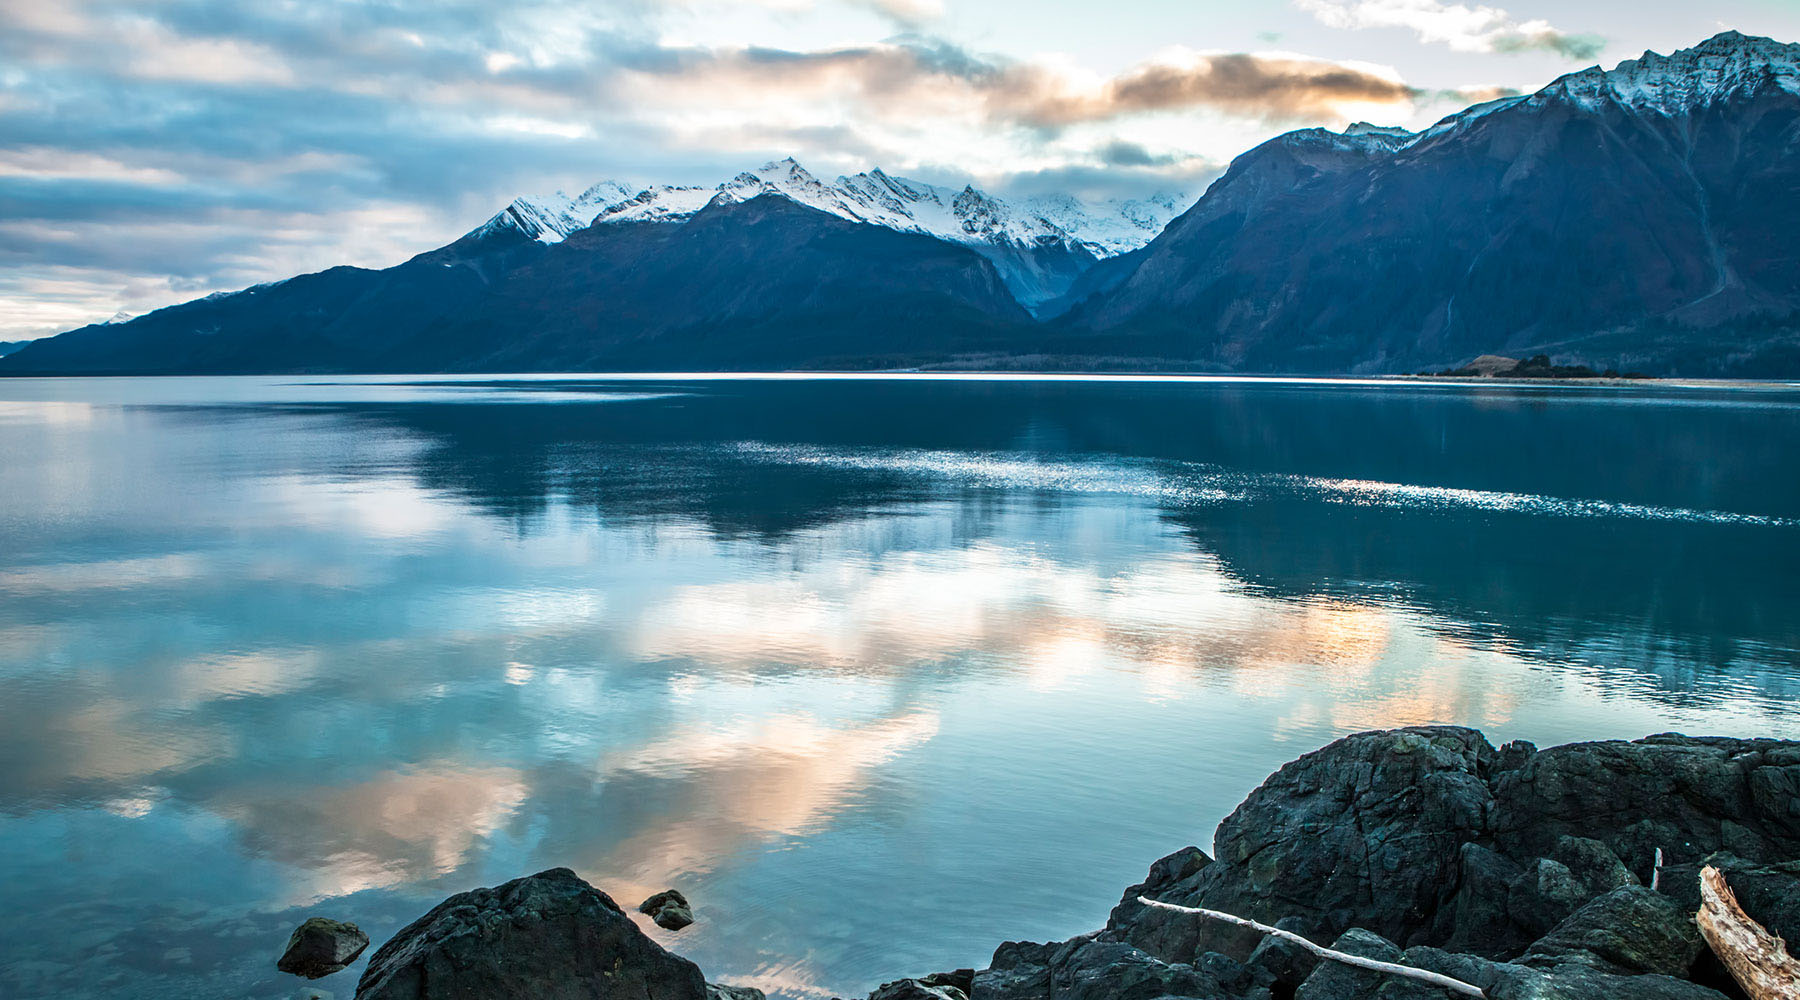 Snowy blue mountains and icy waters of Haines Alaska